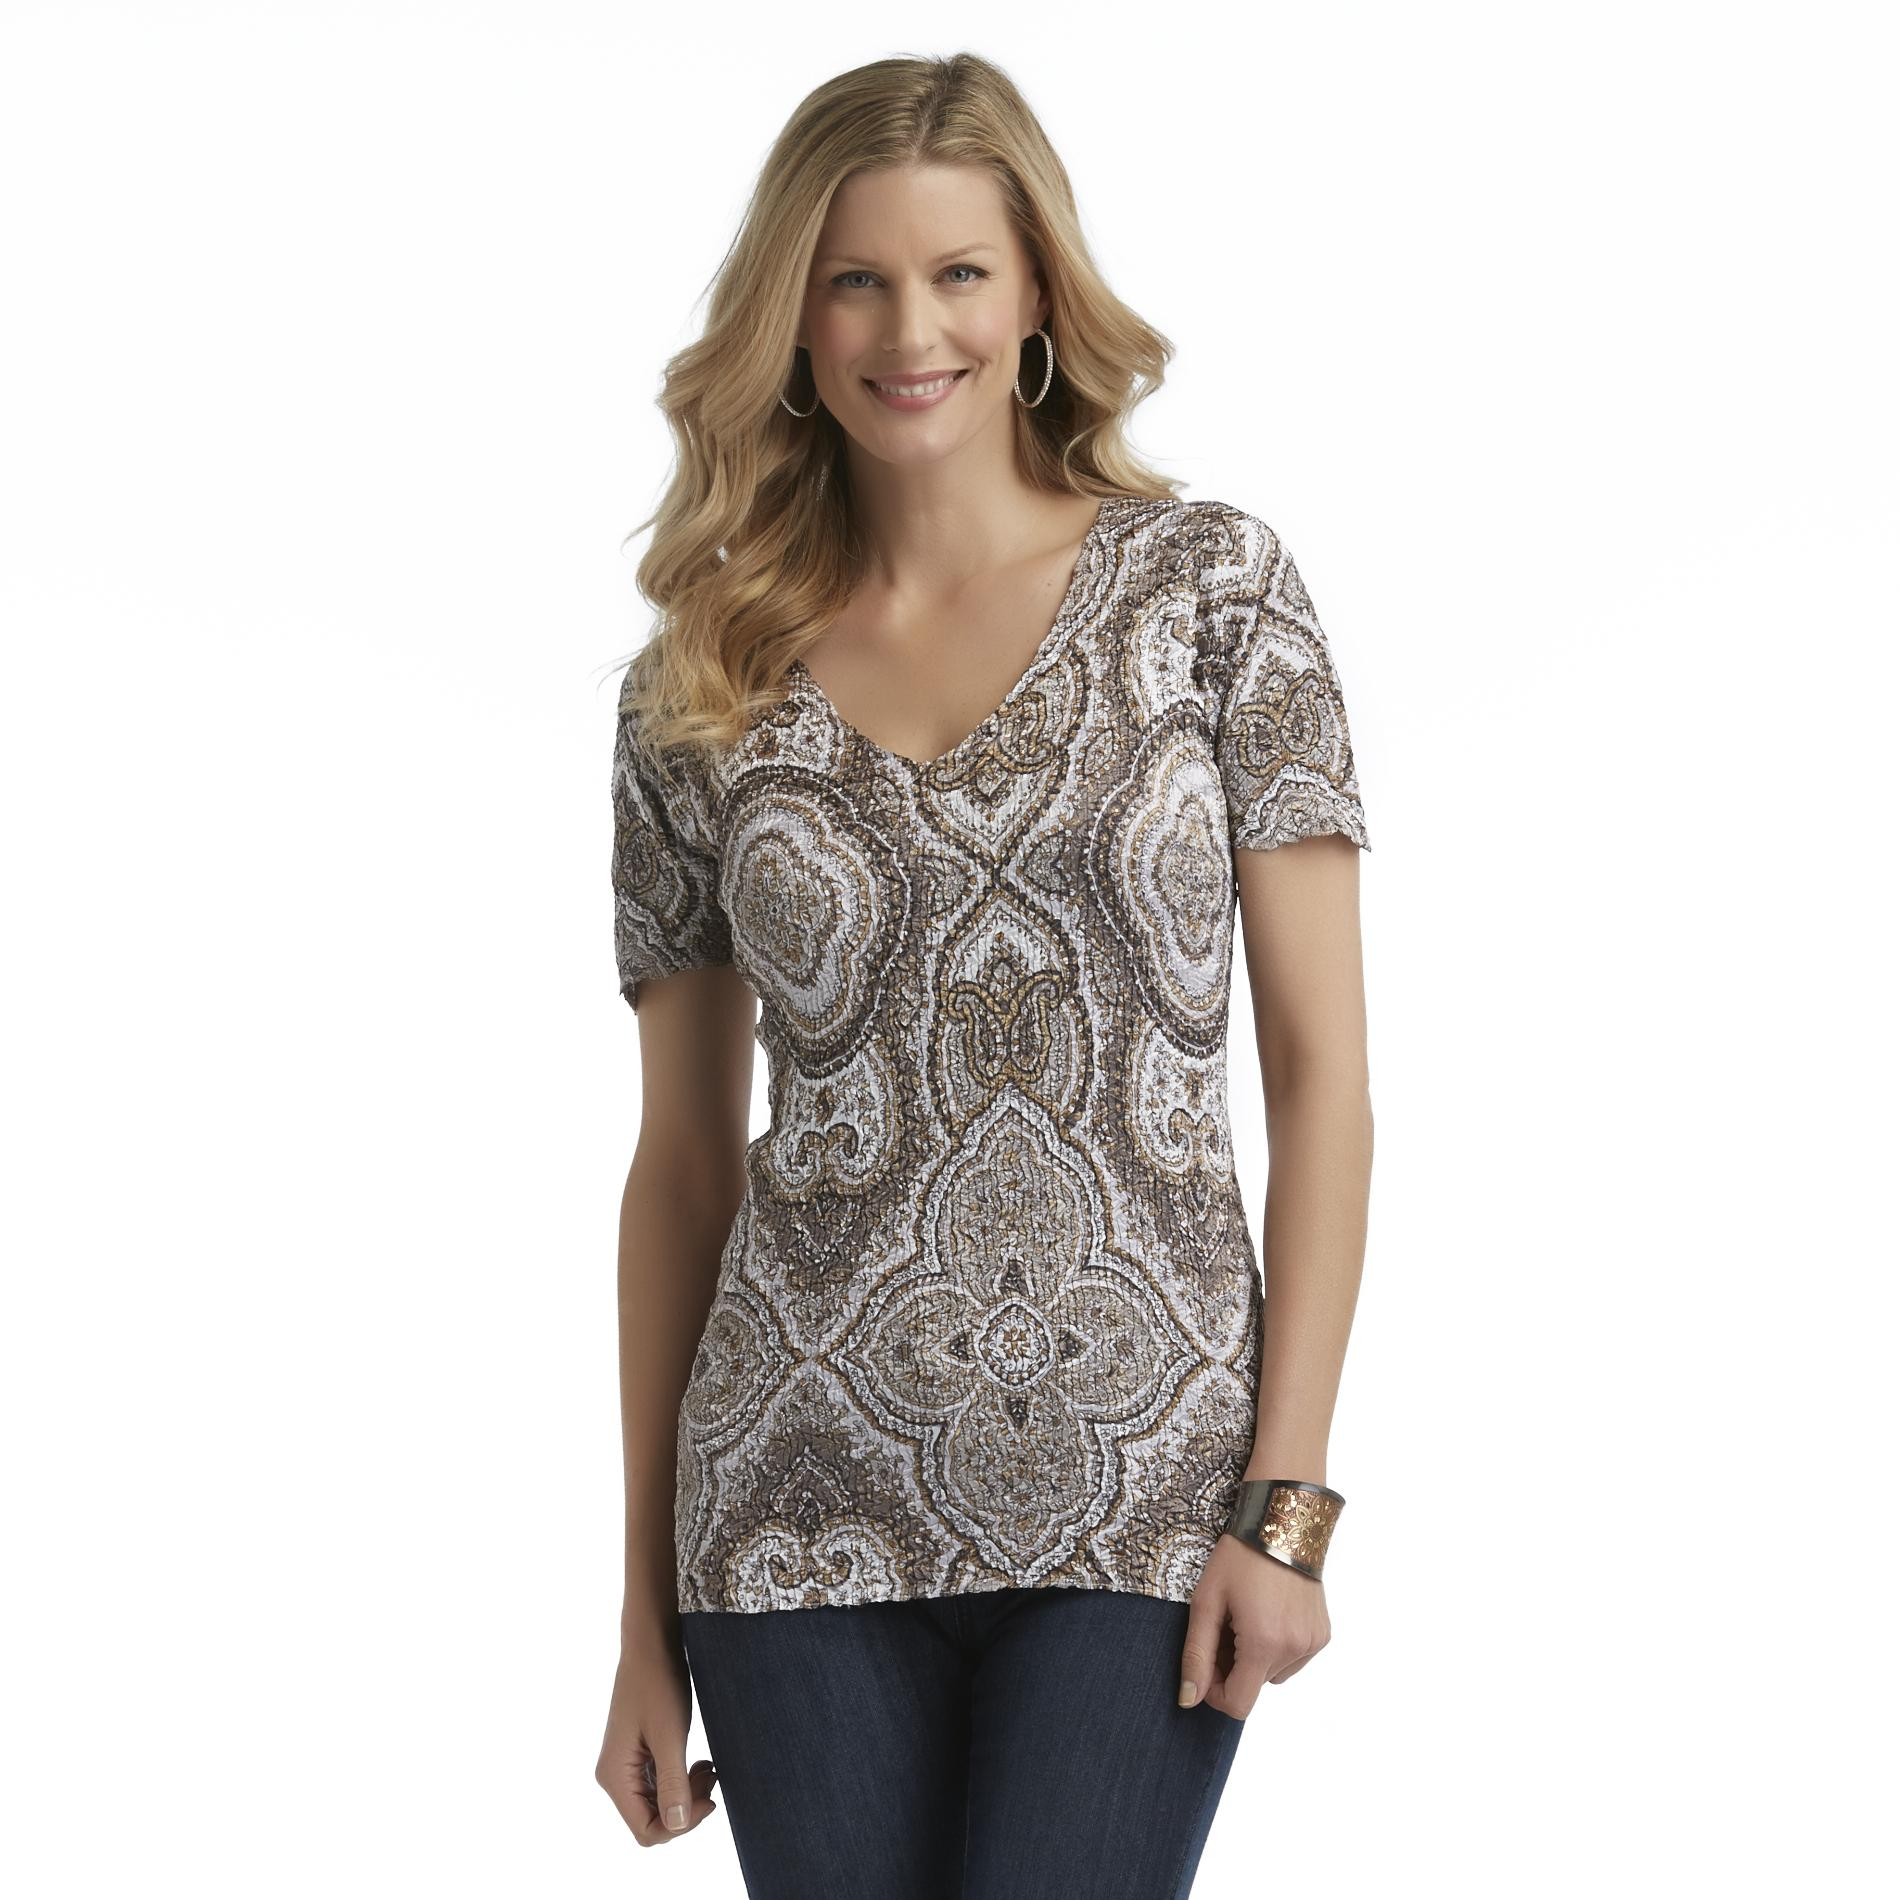 Jaclyn Smith Women's Satin Puckered Shirt - Paisley at Kmart.com